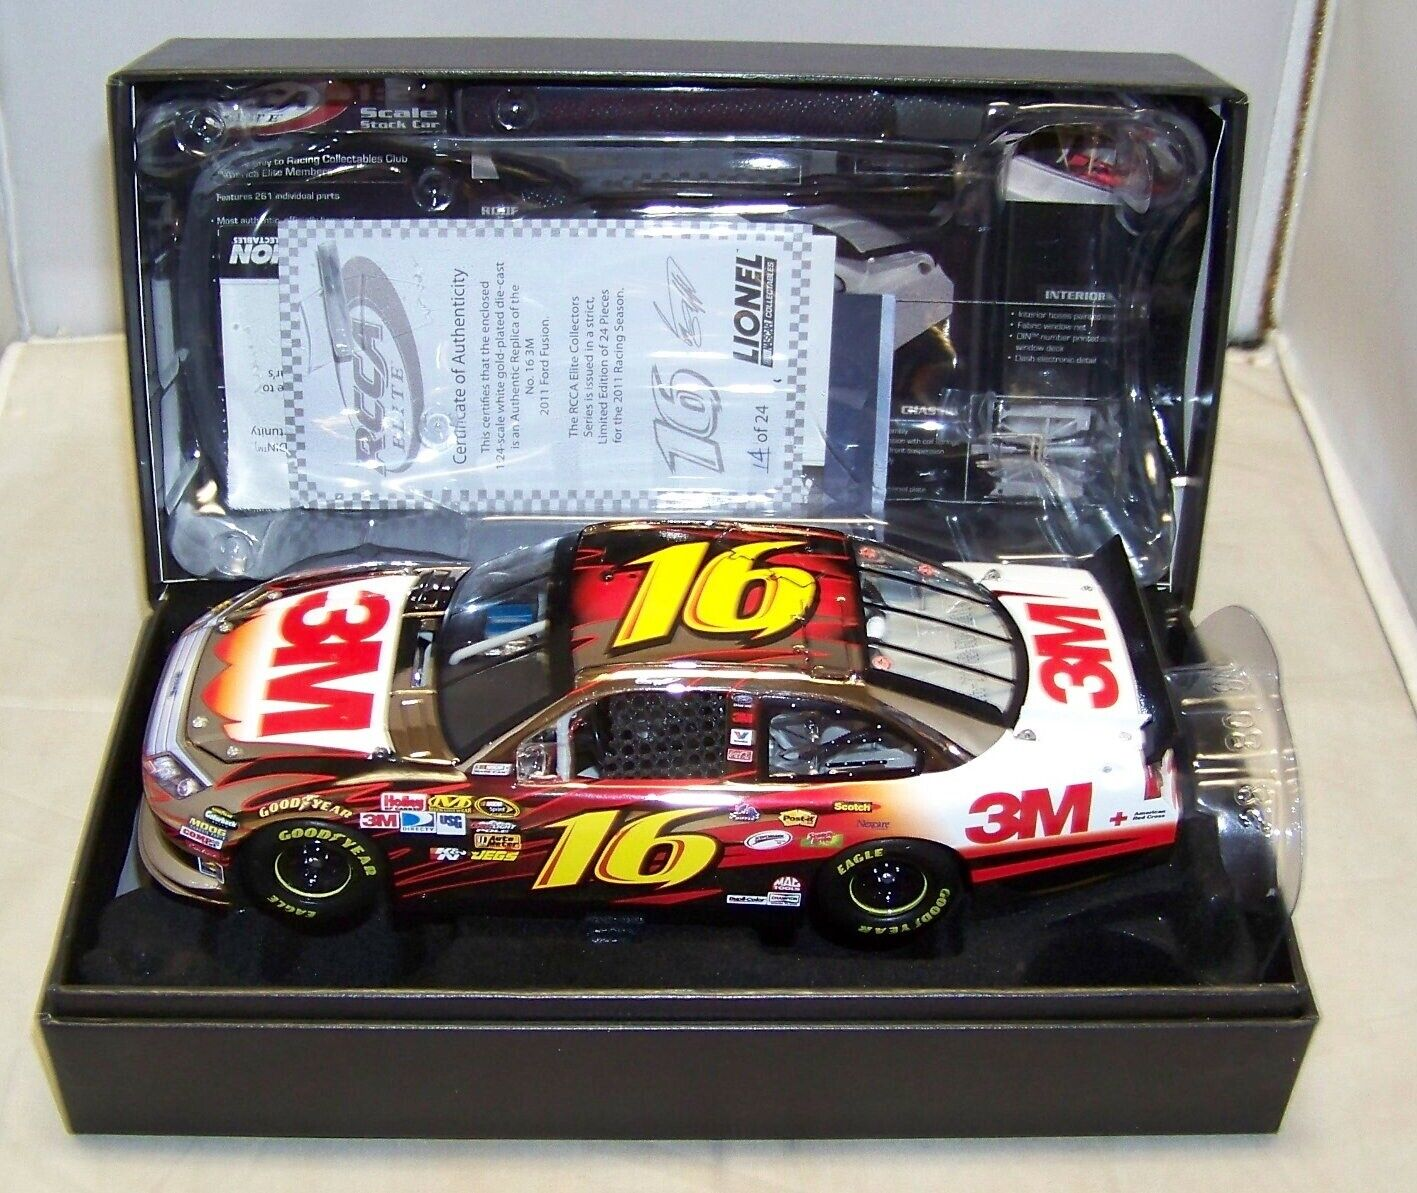 1 24  2011 Action Racing Collectables Club of America Elite  16 3 m Or Blanc Greg Biffle  14 24  nouveau in Box Look Wow  mode classique